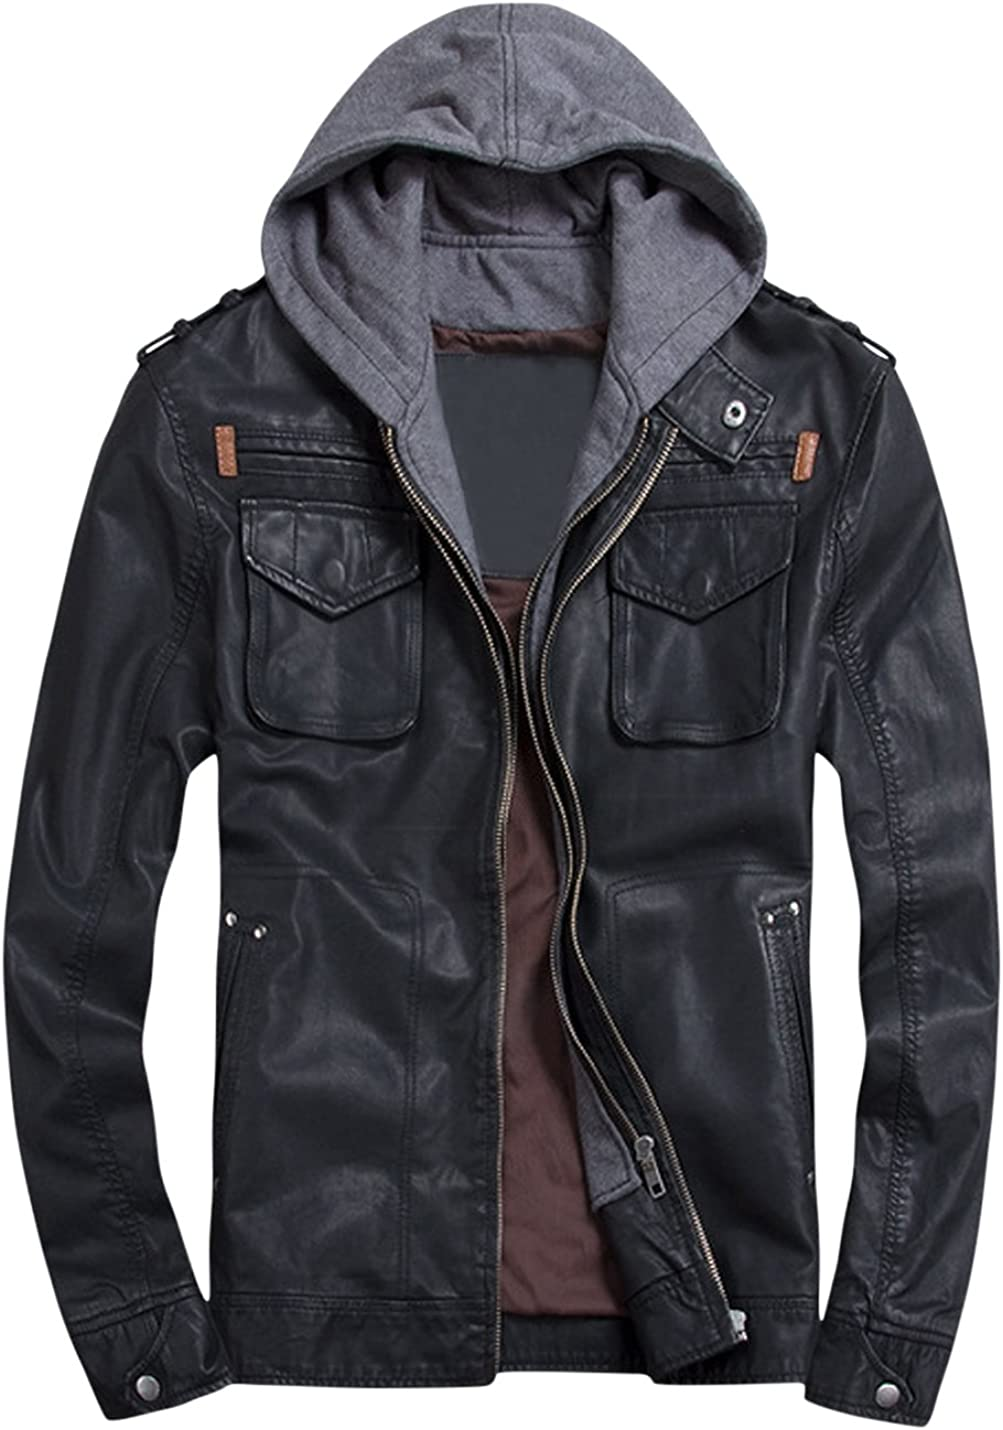 Springrain Mens Detachable Hood Zipper Outerwear PU Leather Moto Biker Jacket Coats